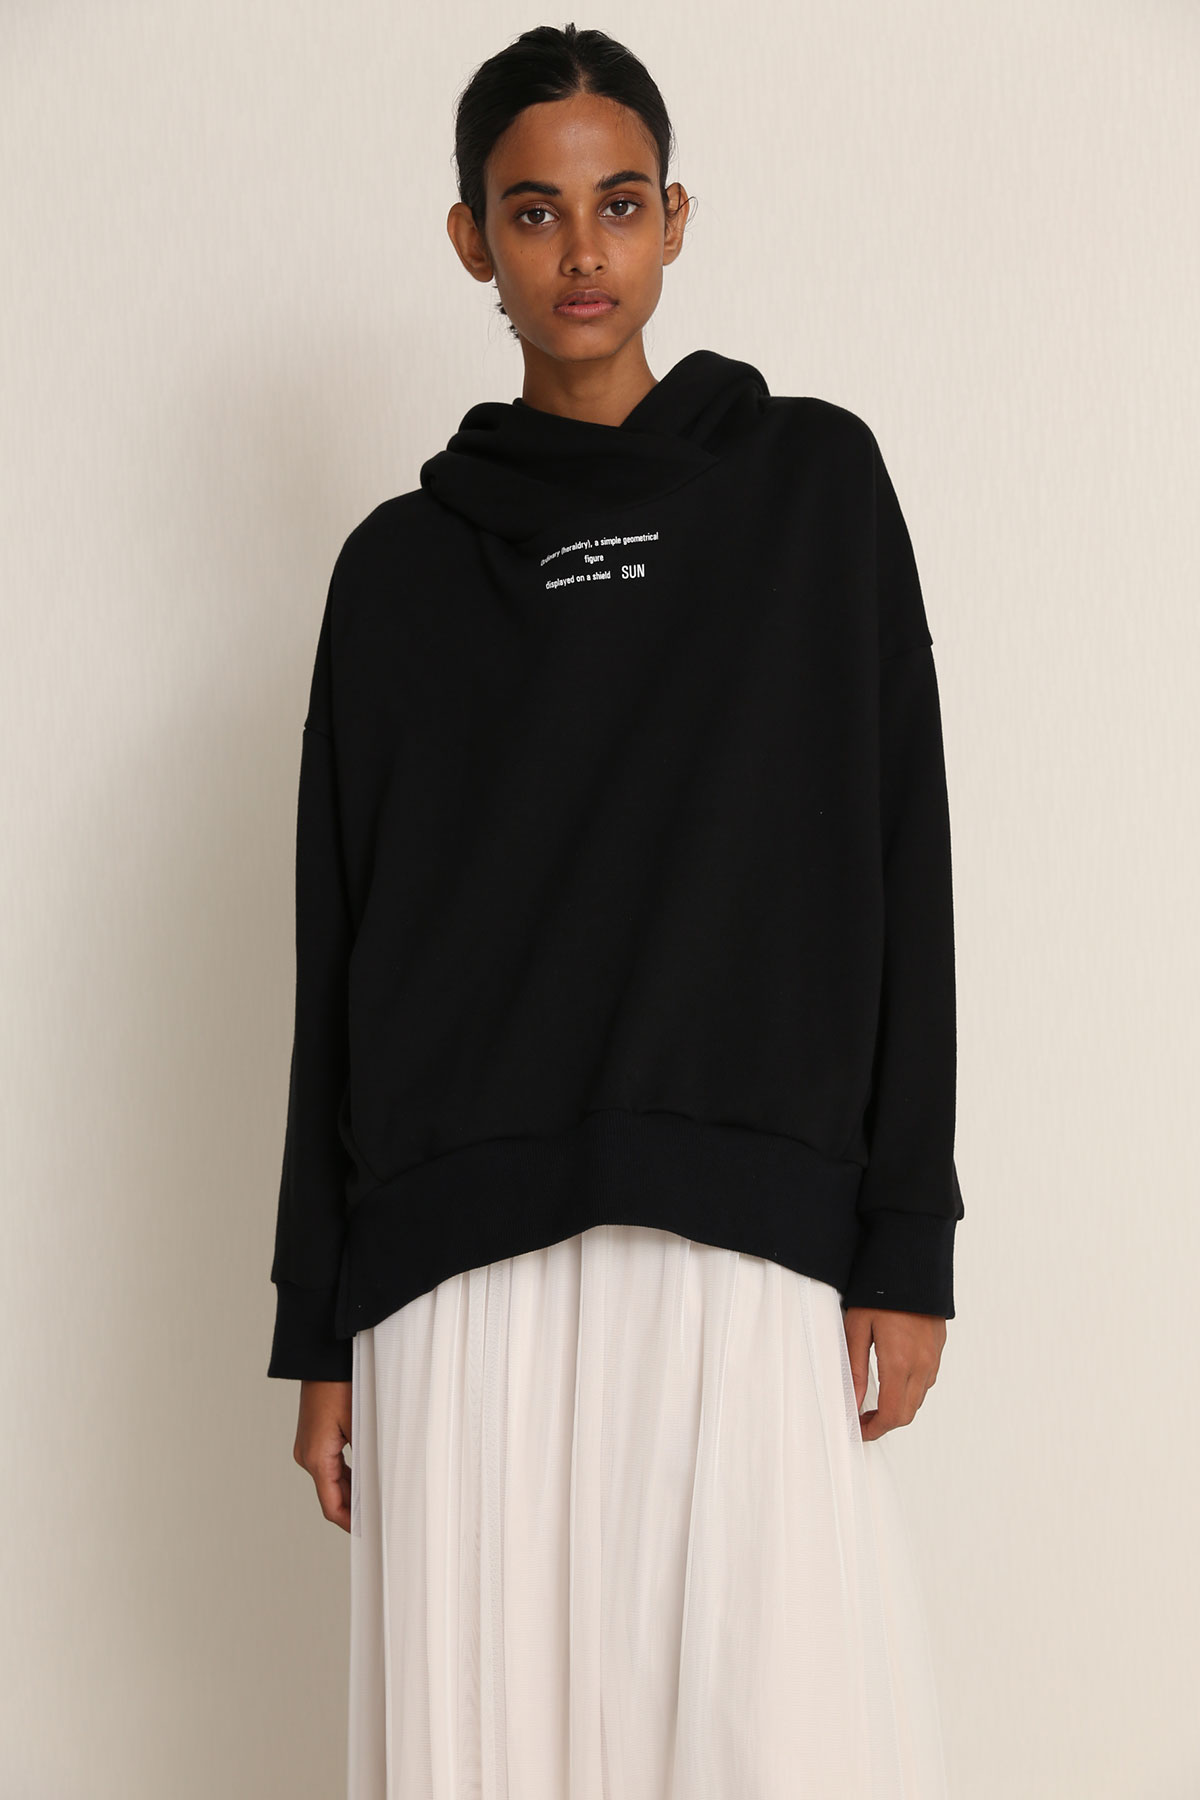 BO21-133T-black Typographic Sweat Drape Hoodie-BLACK-【BO21-133T】Del.Dec.